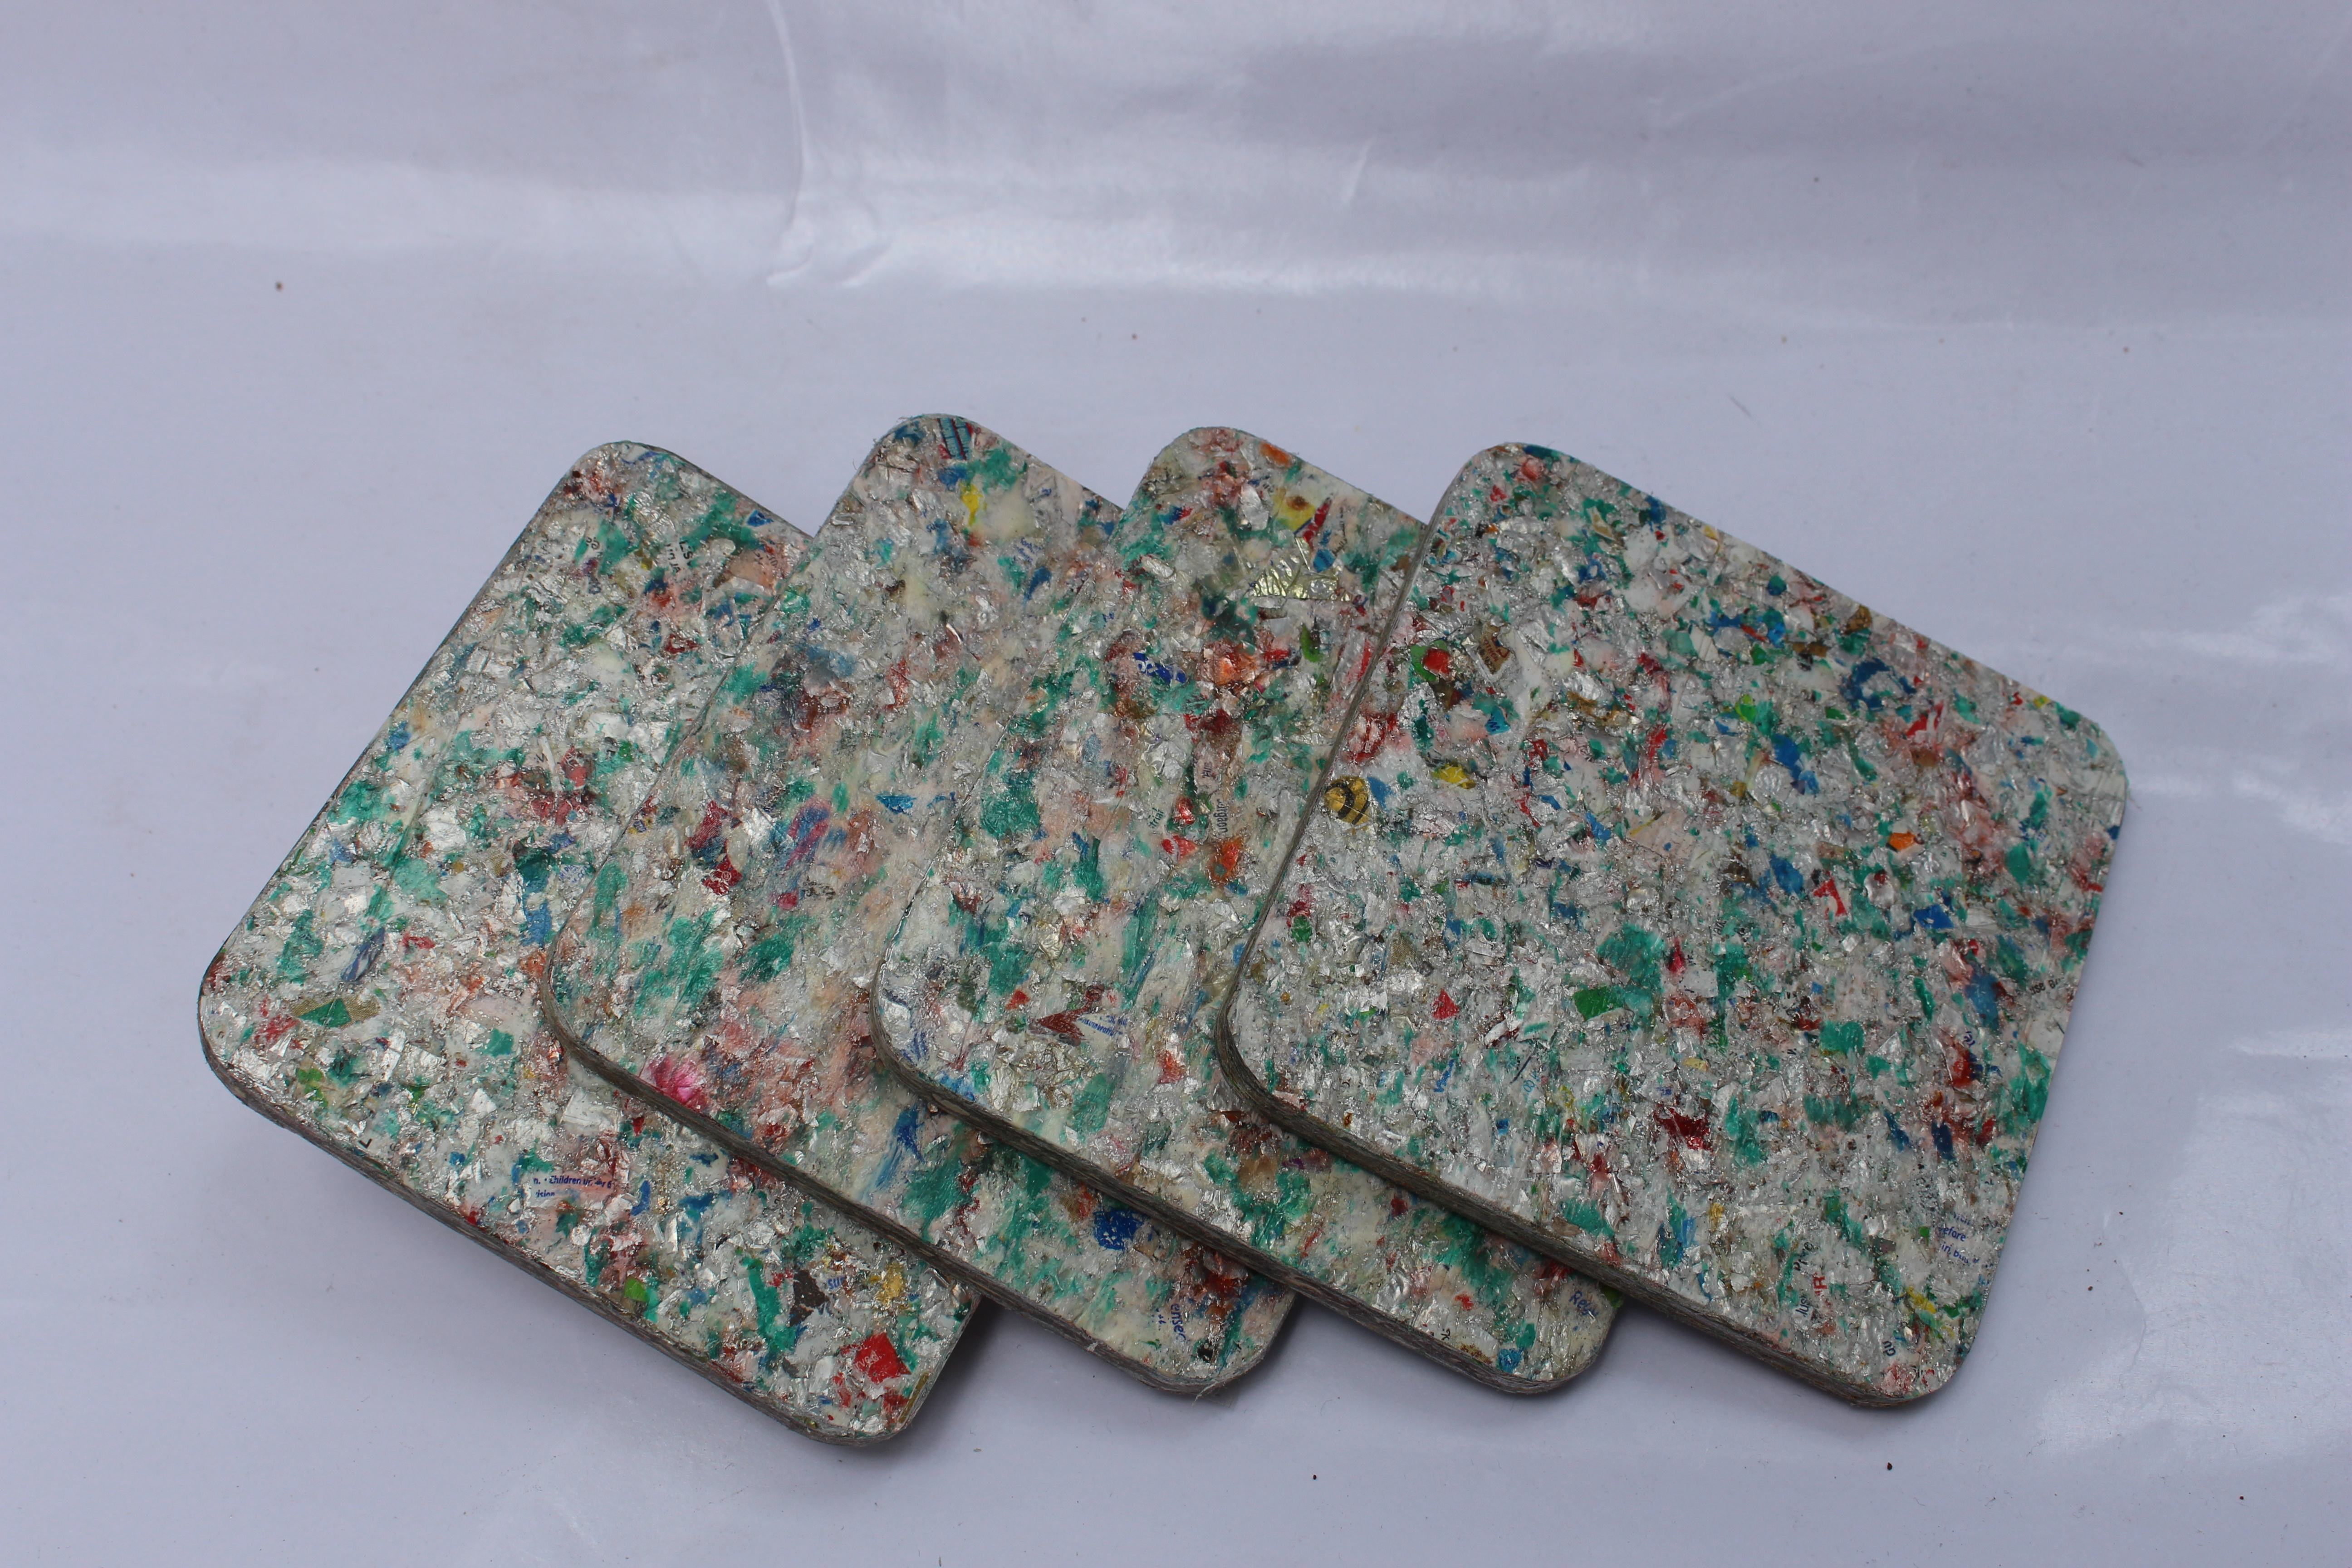 Waste Recycled Products – ECO BOARDS COASTER (REPROCESSED)